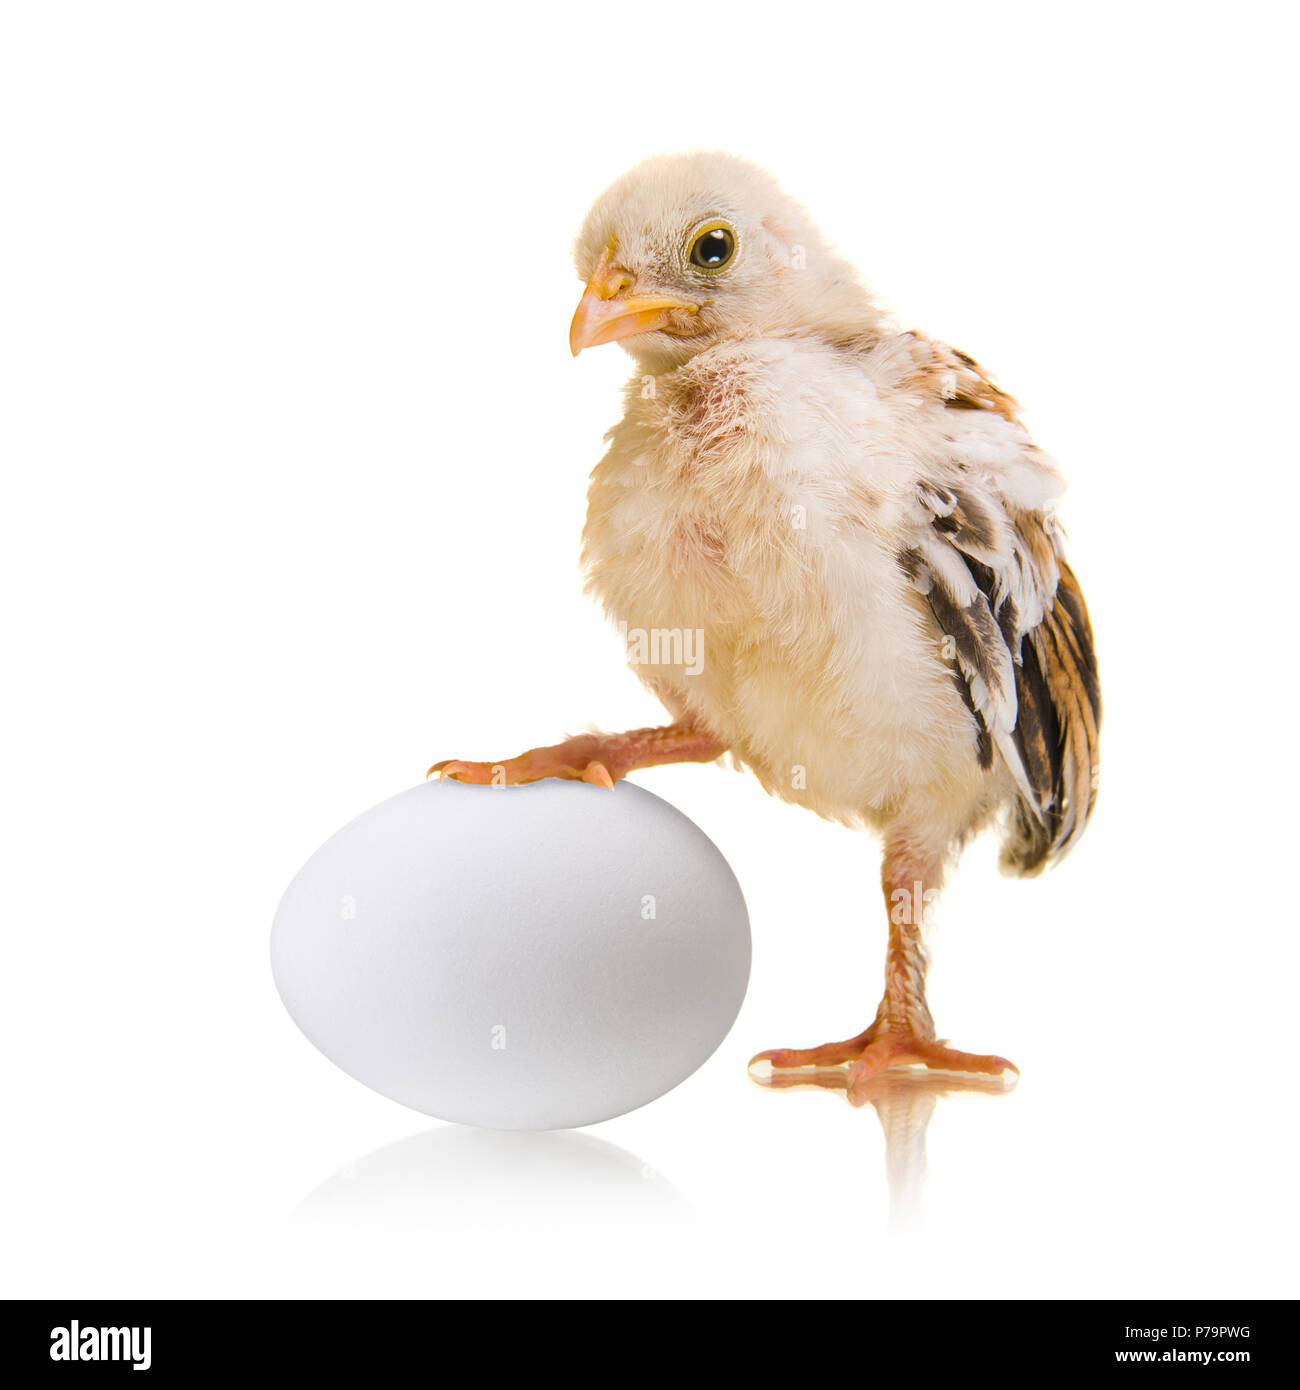 little chick and white egg on white background, isolated, close up - Stock Image